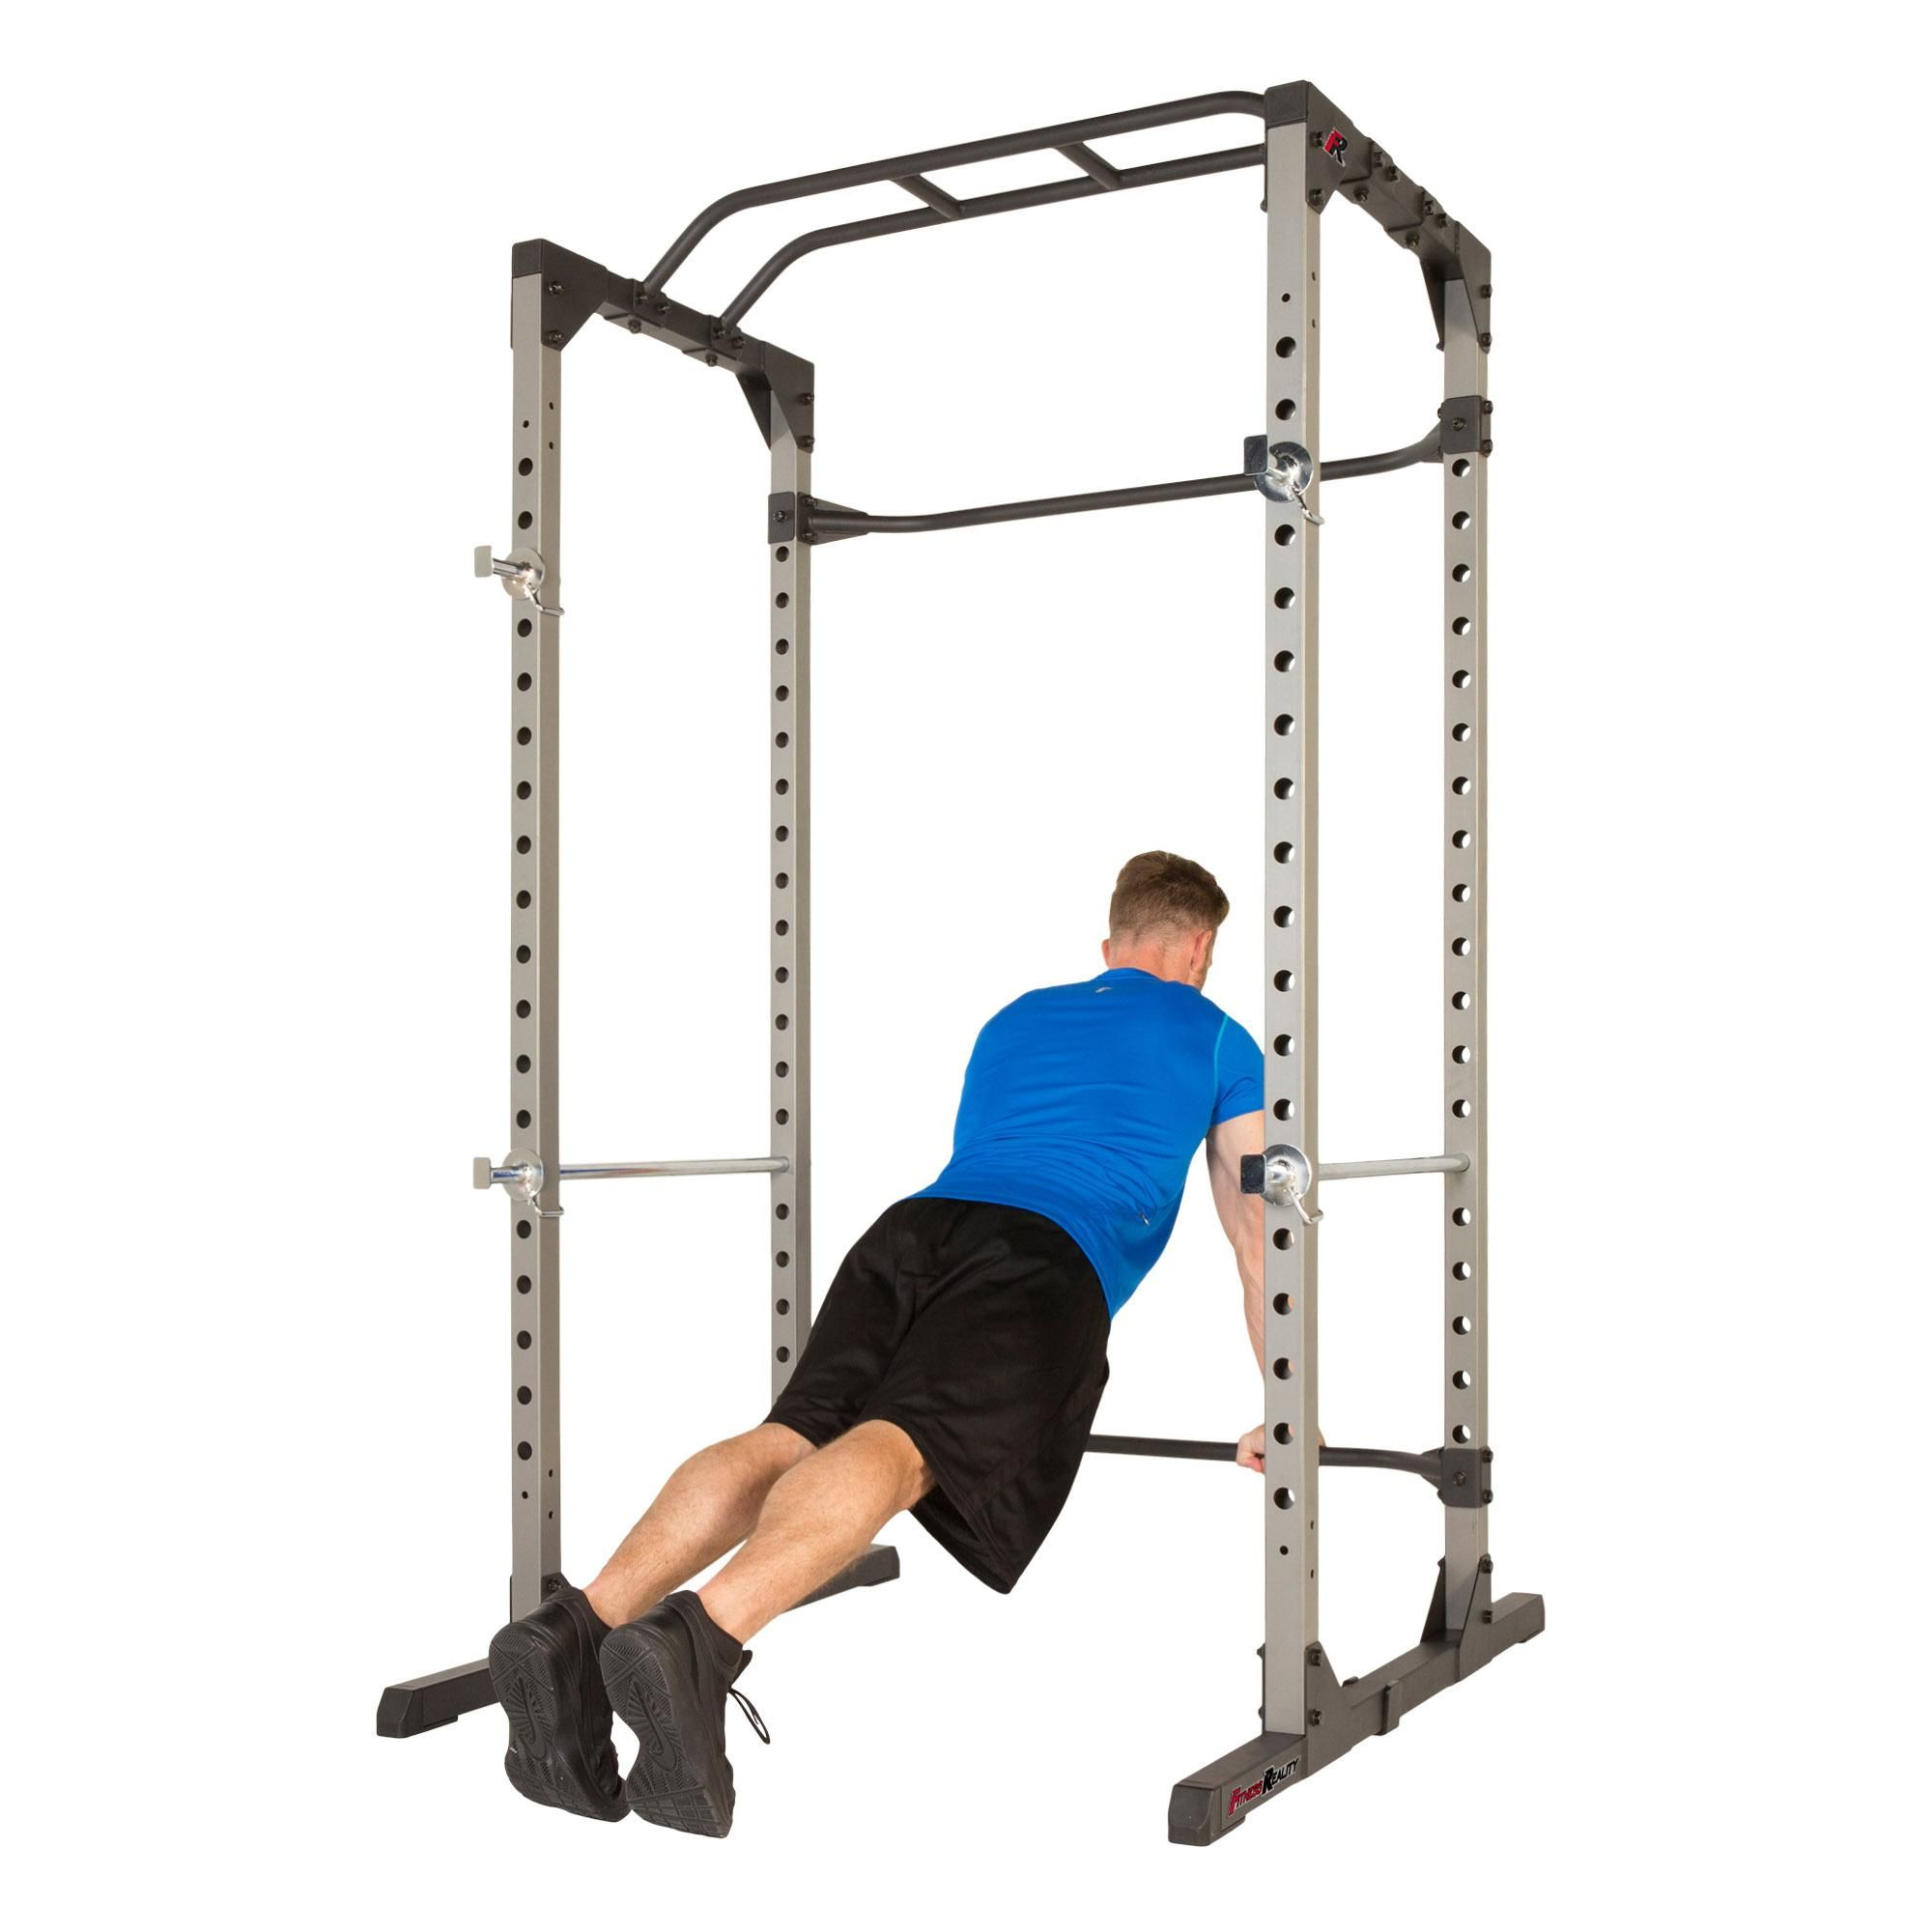 e121d25972 FITNESS REALITY 810XLT Super Max Power Cage with 800lbs Weight Capacity At Home  Gym